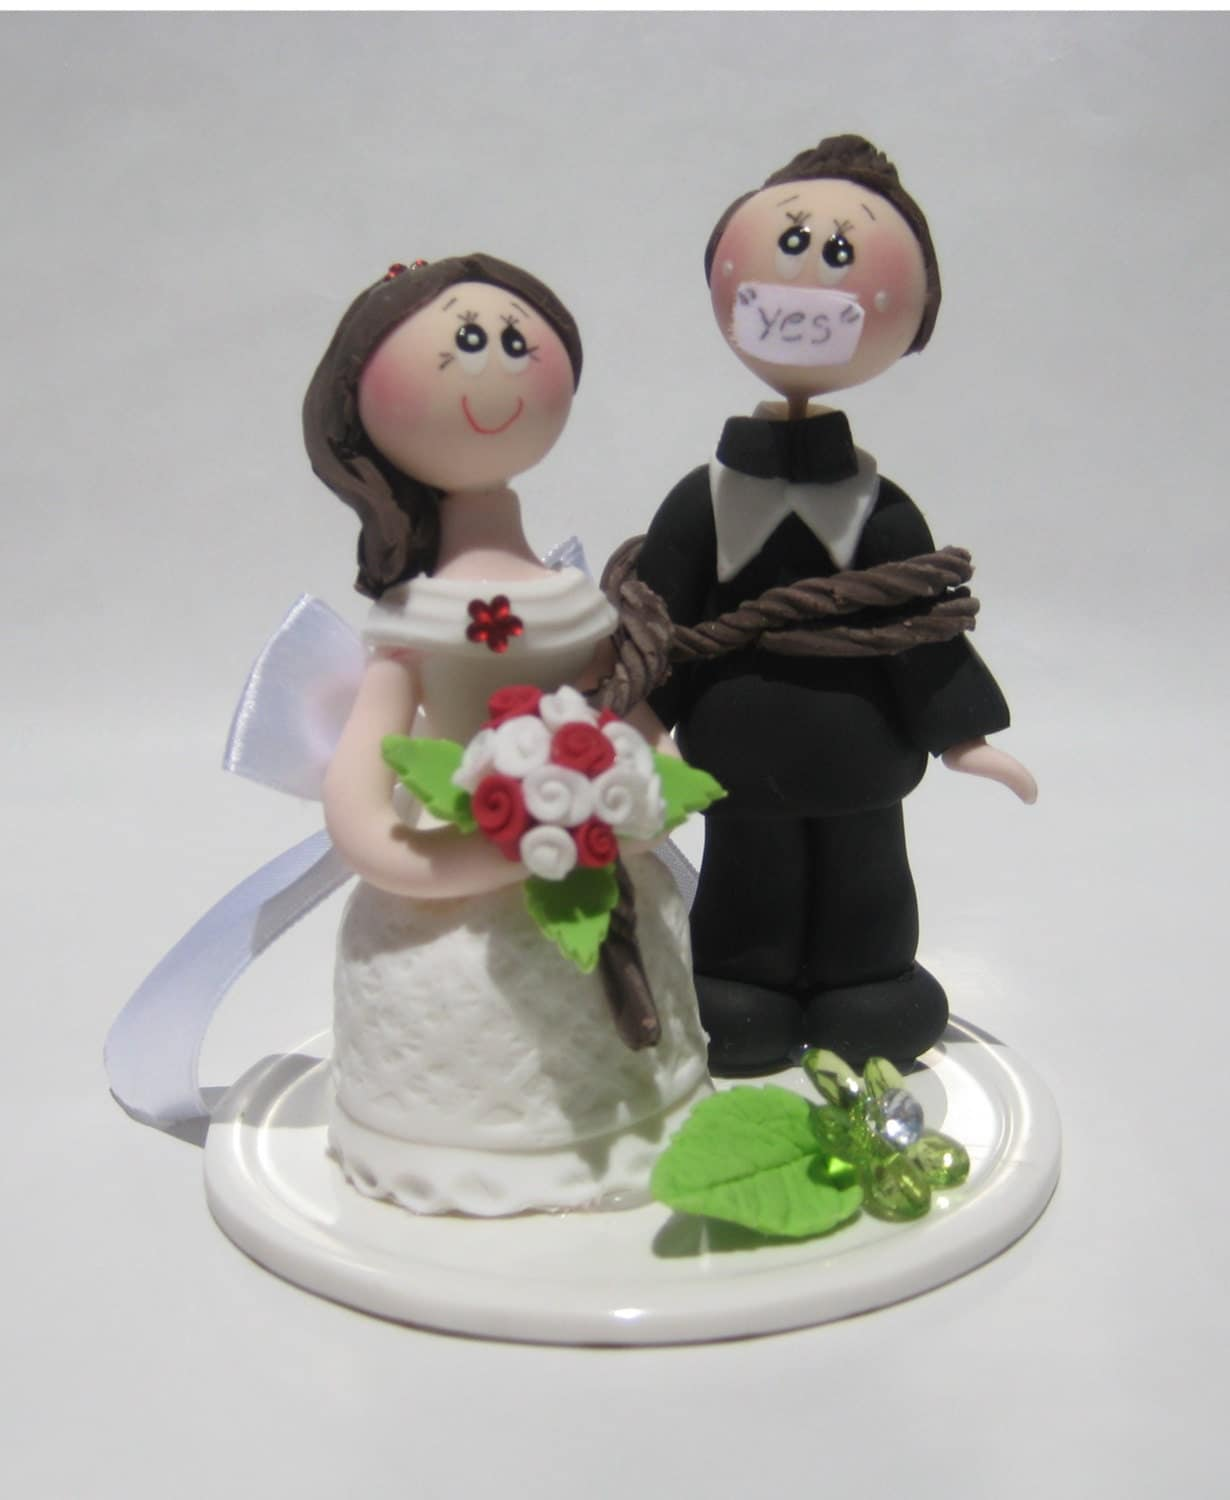 Bride Wedding Cake Topper: Wedding Cake Topper Funny Wedding Cake Topper Cake Topper